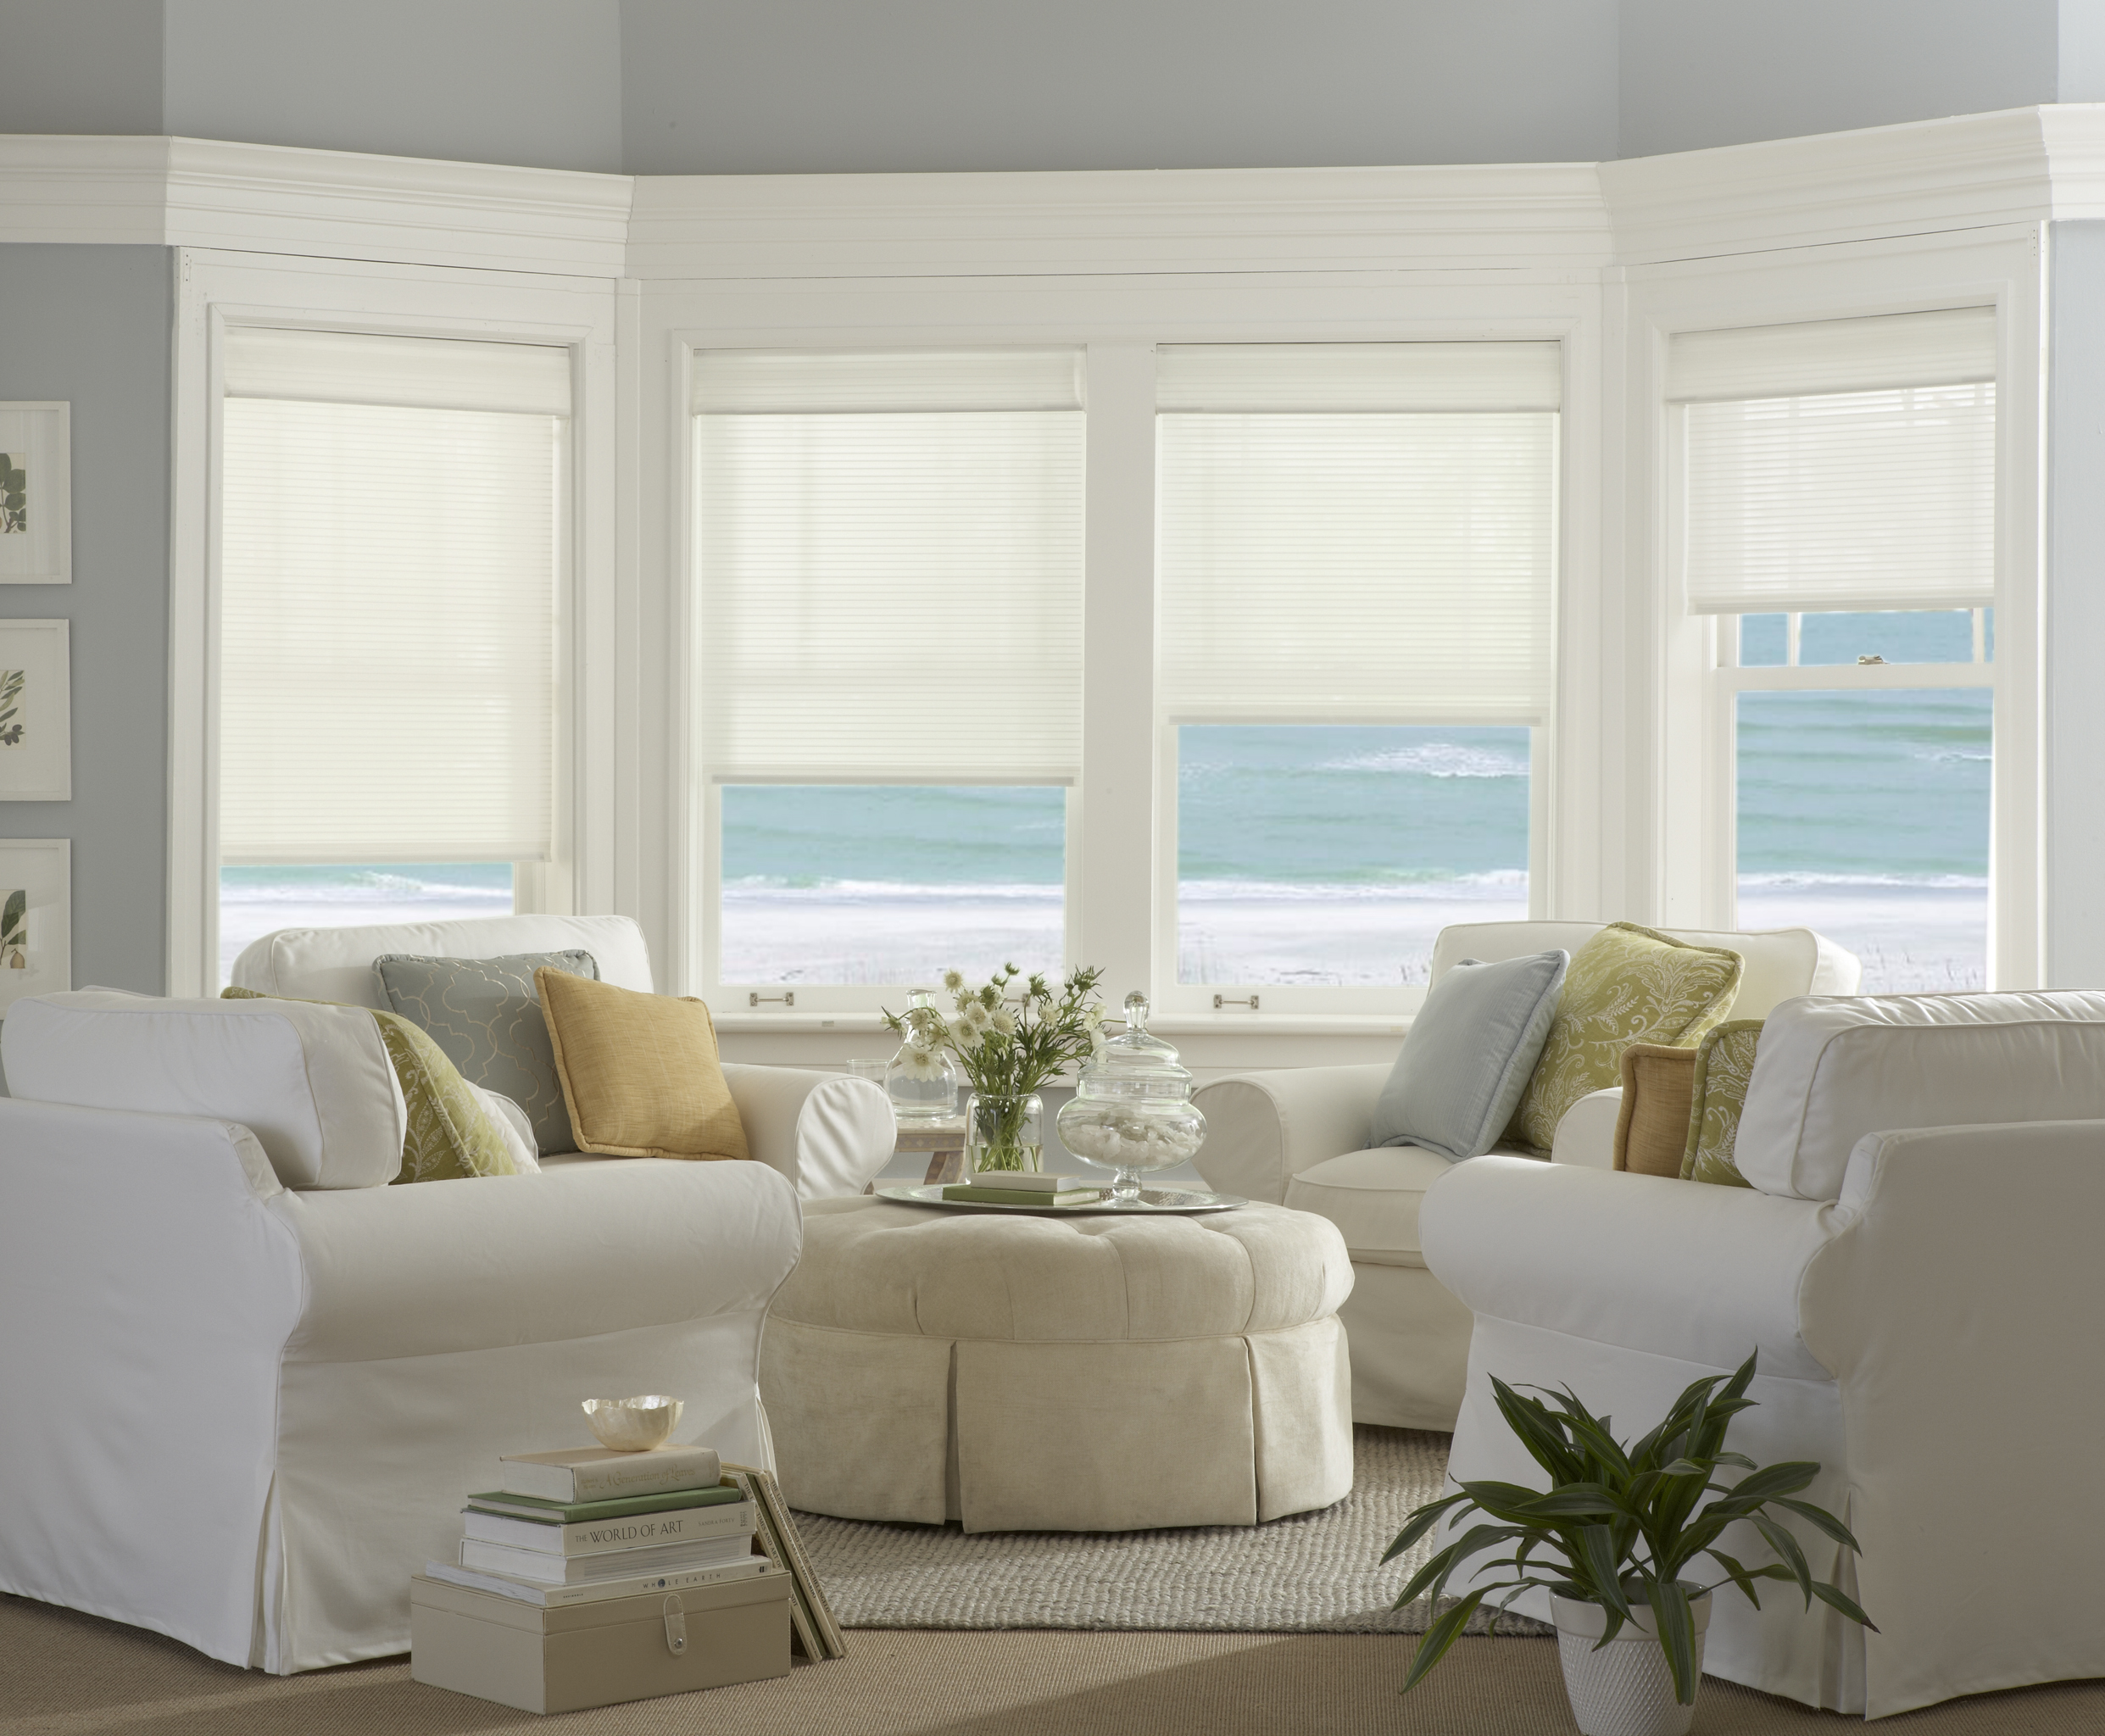 Image Result For Motorized Roman Shades